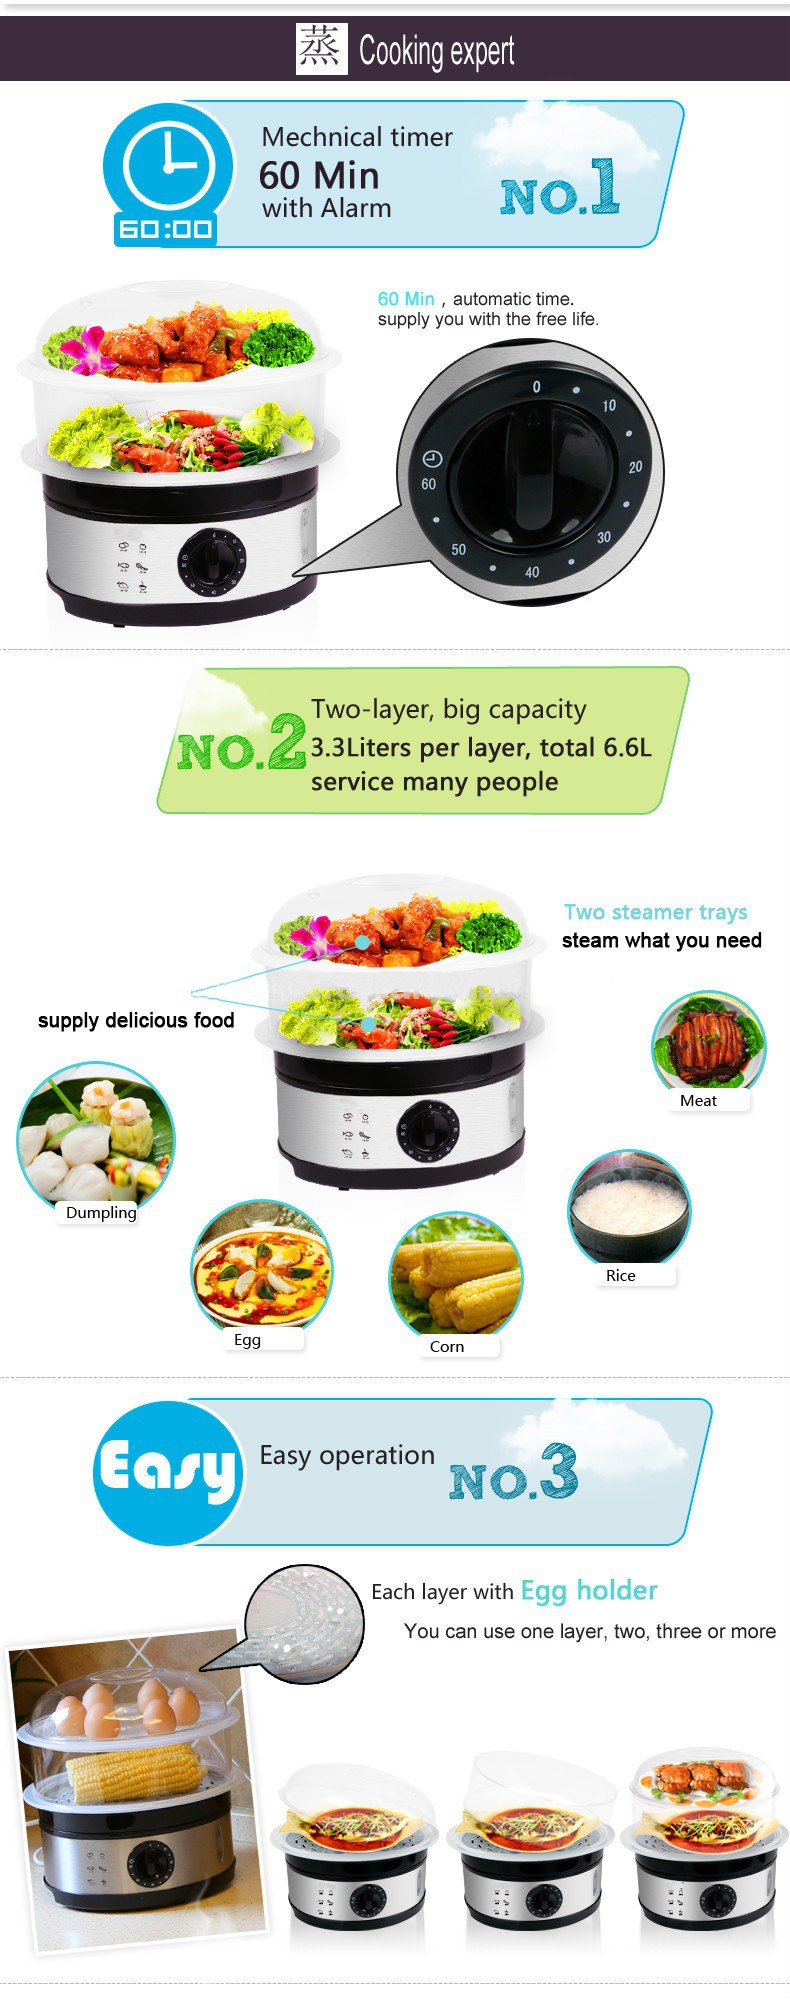 3 Layer Digital Electric Steam Cooker with Stainless Steel Housing